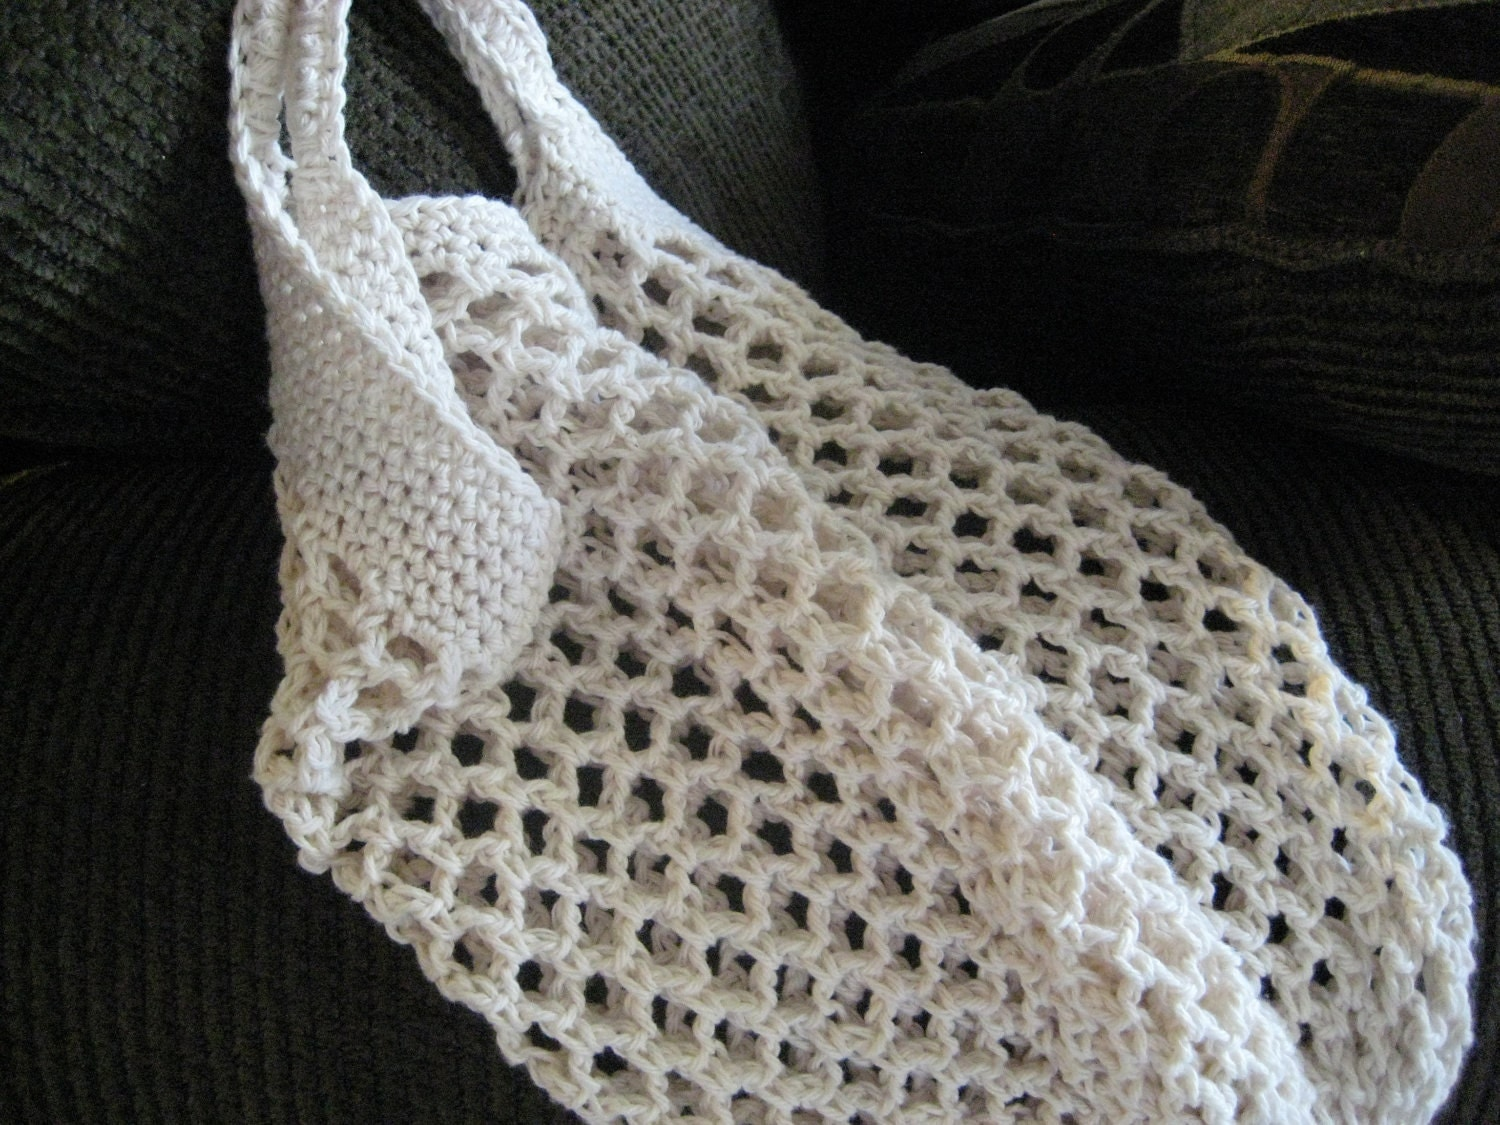 Crochet Mesh Bag Pattern : Natural Cotton Crochet Mesh Shopping Bag by GMaEllenCrochetGifts